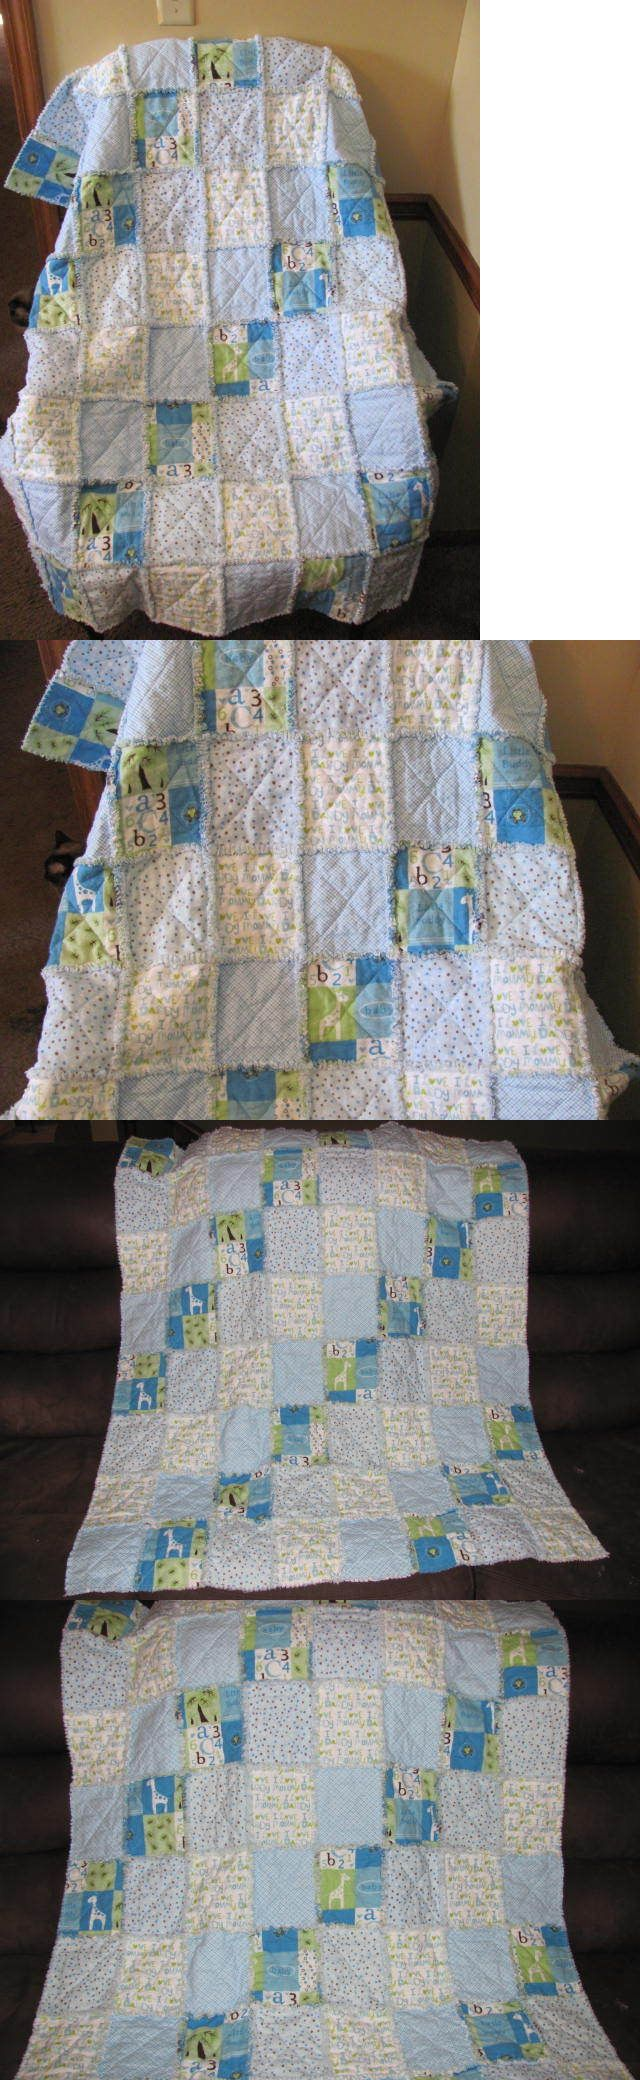 Quilts and Coverlets 180908: New Blue Flannel Reversible Baby Toddler Blanket Baby Quilt Lap Quilt Rag Quilt -> BUY IT NOW ONLY: $45 on eBay!